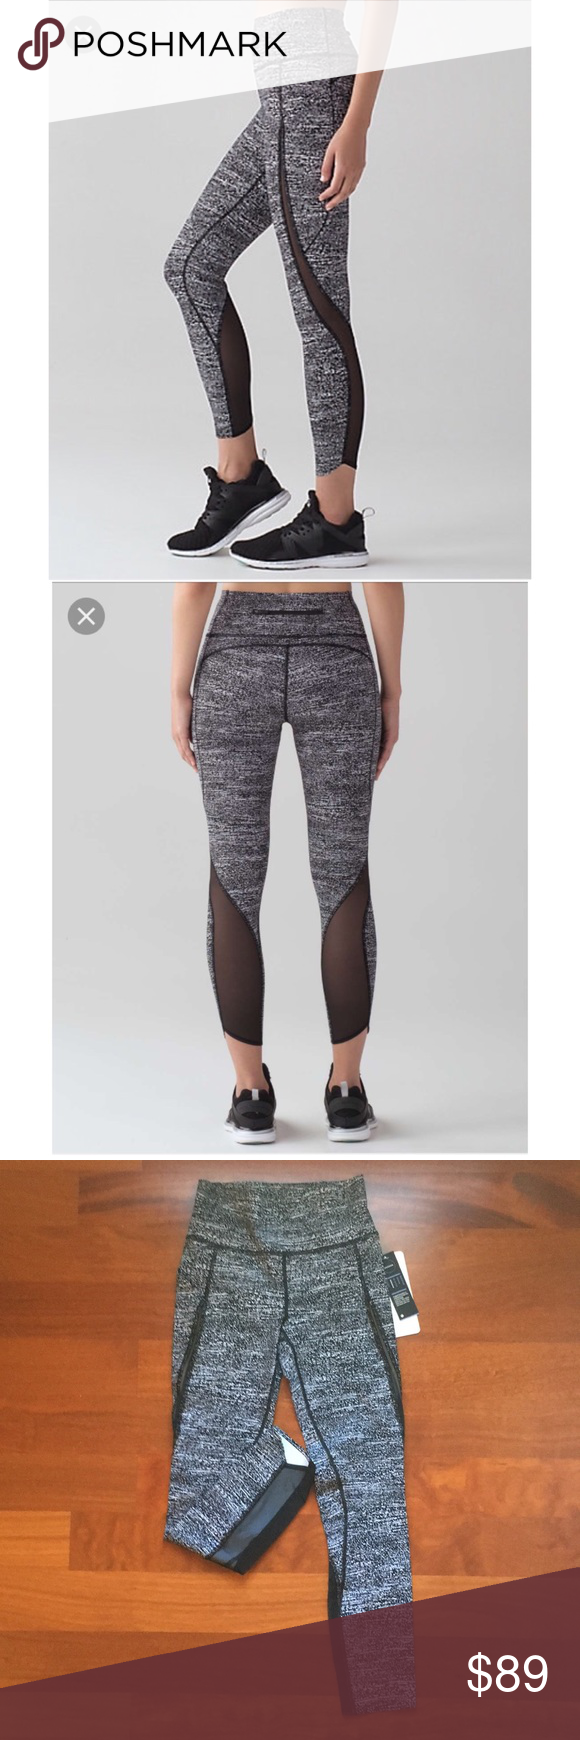 19d6b15d29 Lululemon pace perfect 7/8 tight NWT size 4 Brand new Lululemon leggings  with tags